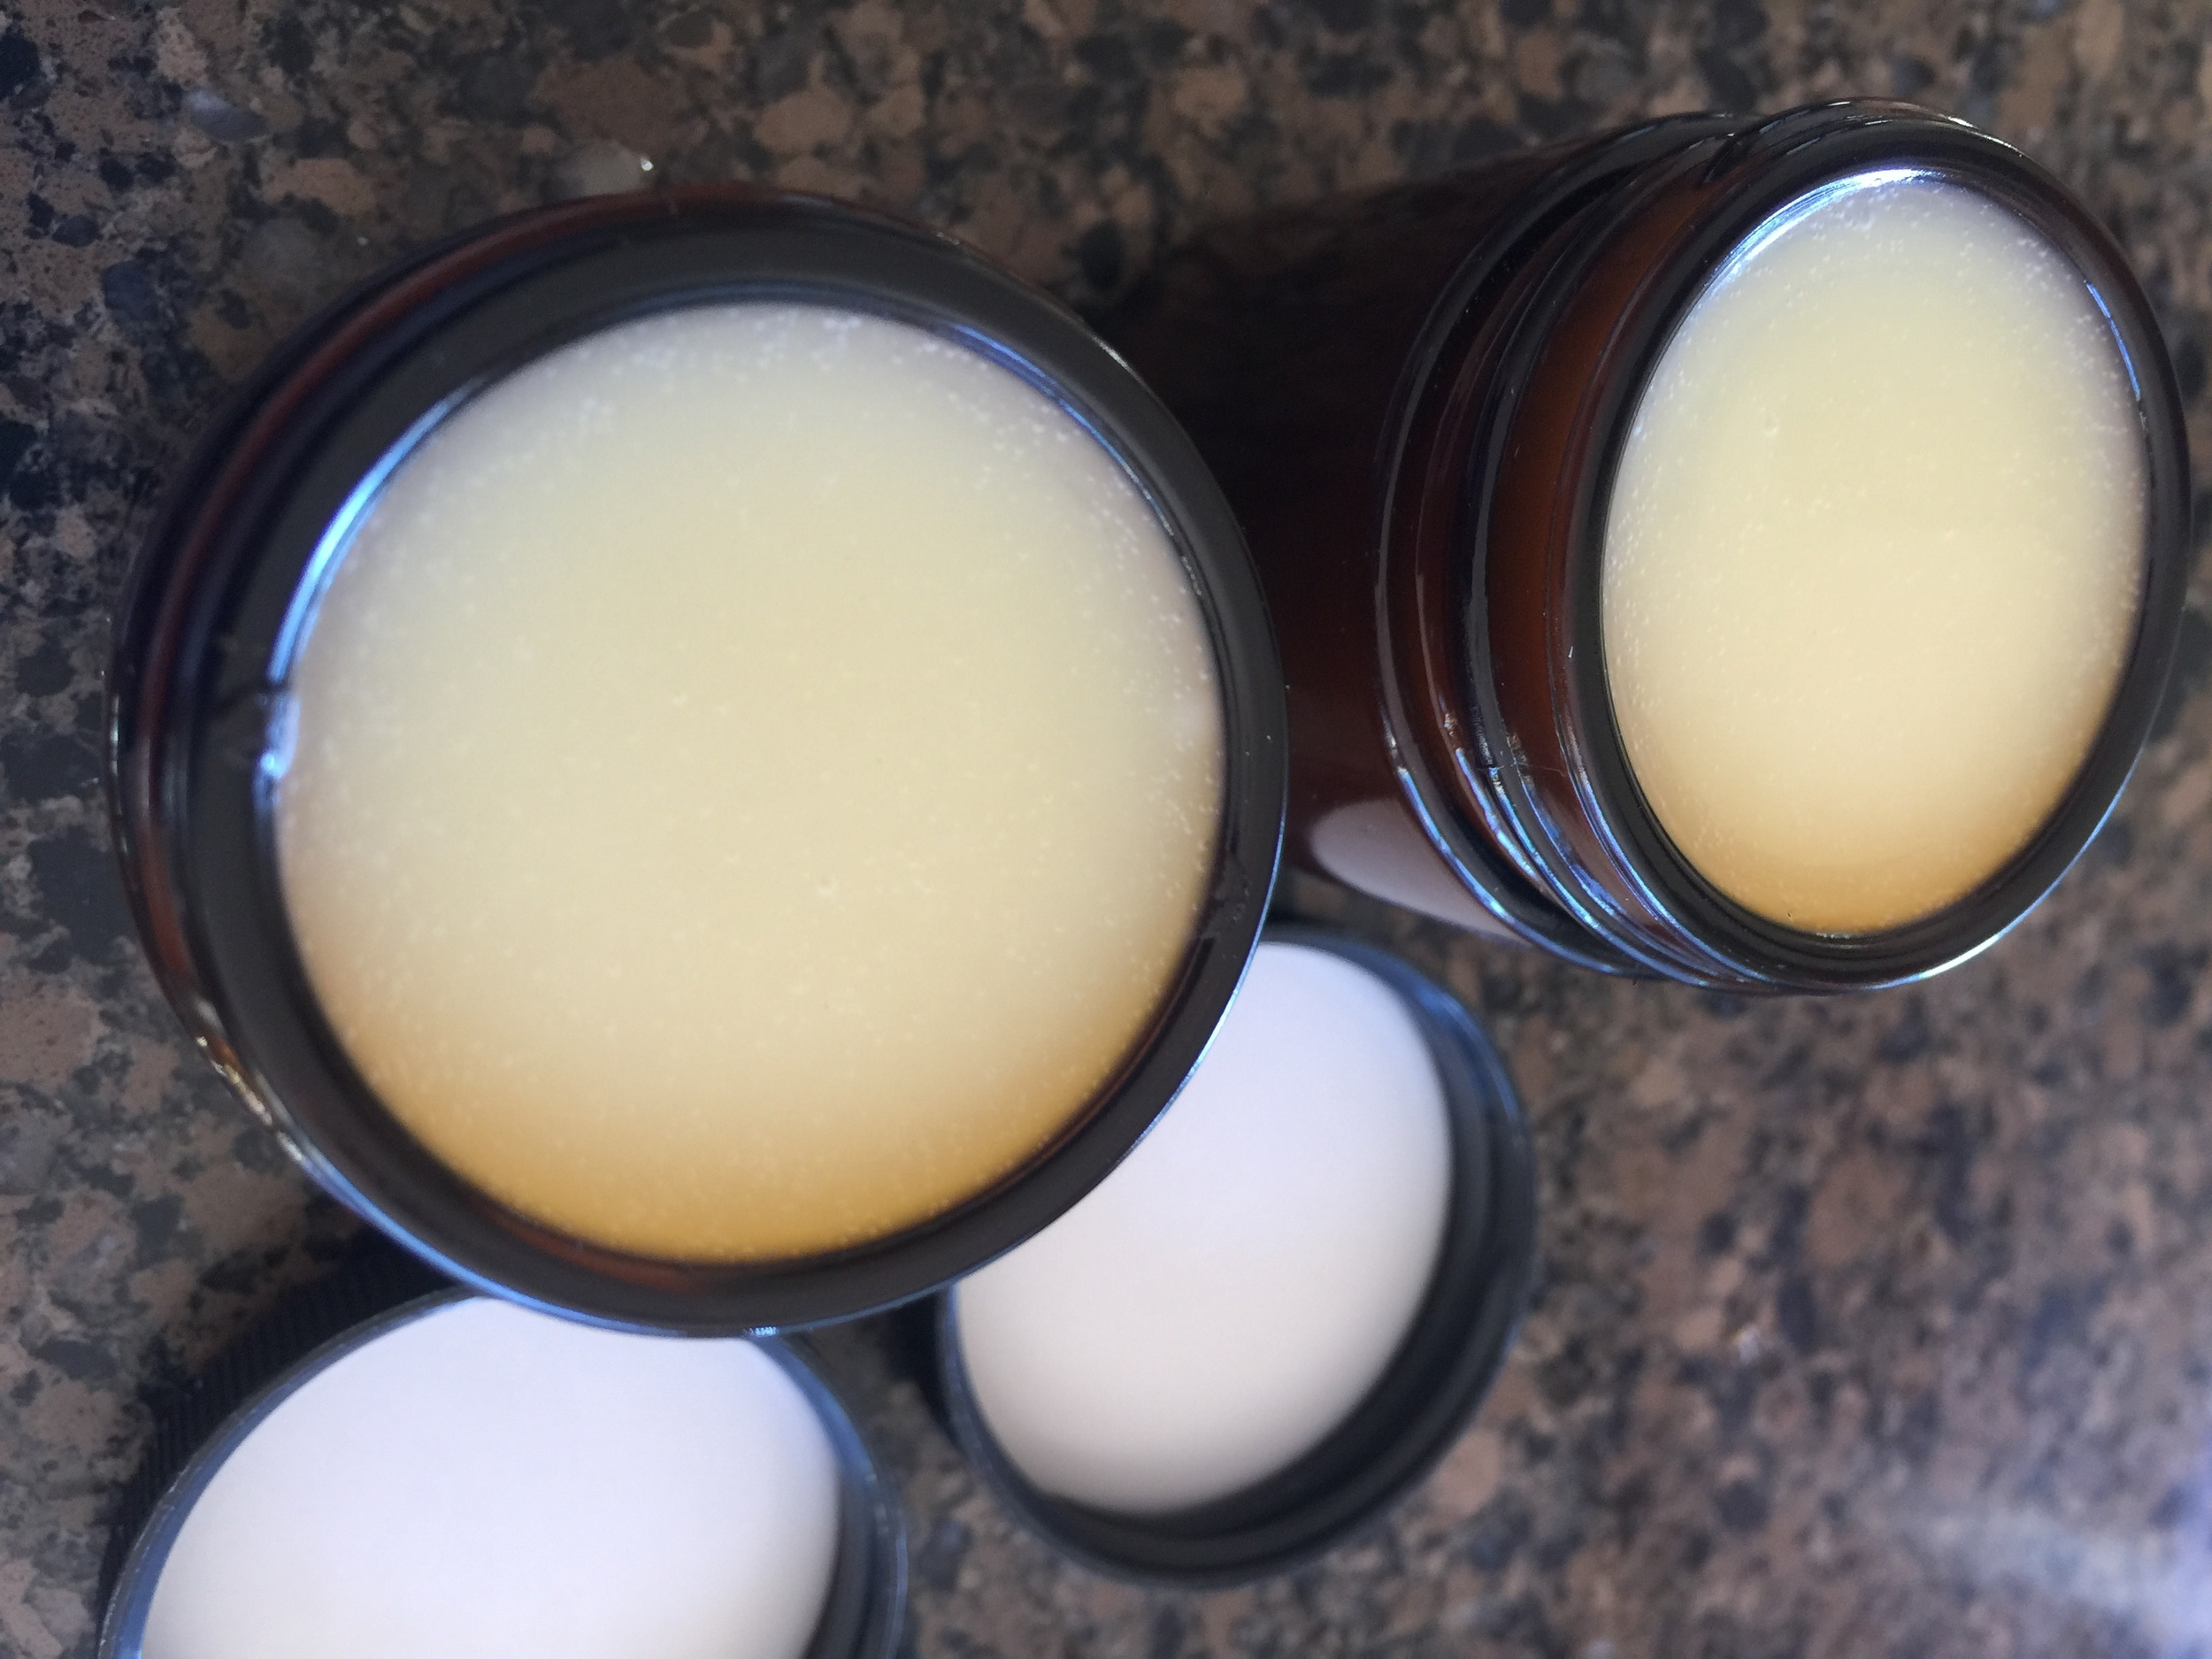 Beautiful, all natural deodorant! These haven't set up yet, so you can see they are still liquid. Place them in the refrigerator for about 30 minutes, and they are perfect!